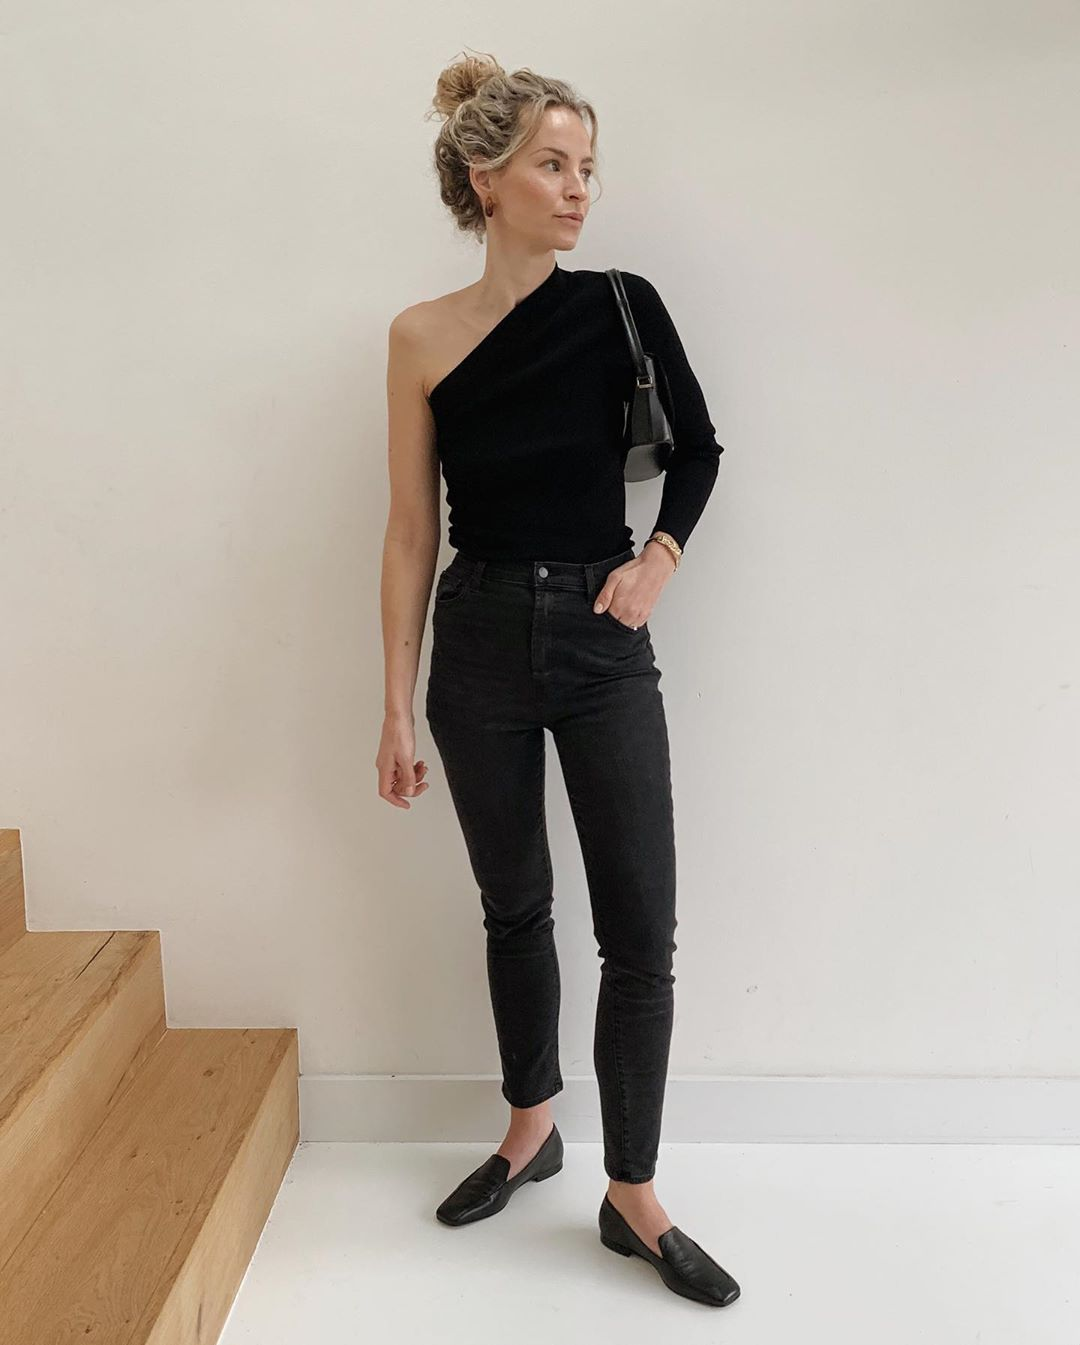 Black Jeans Are a Stylish Pick for Spring Outfits